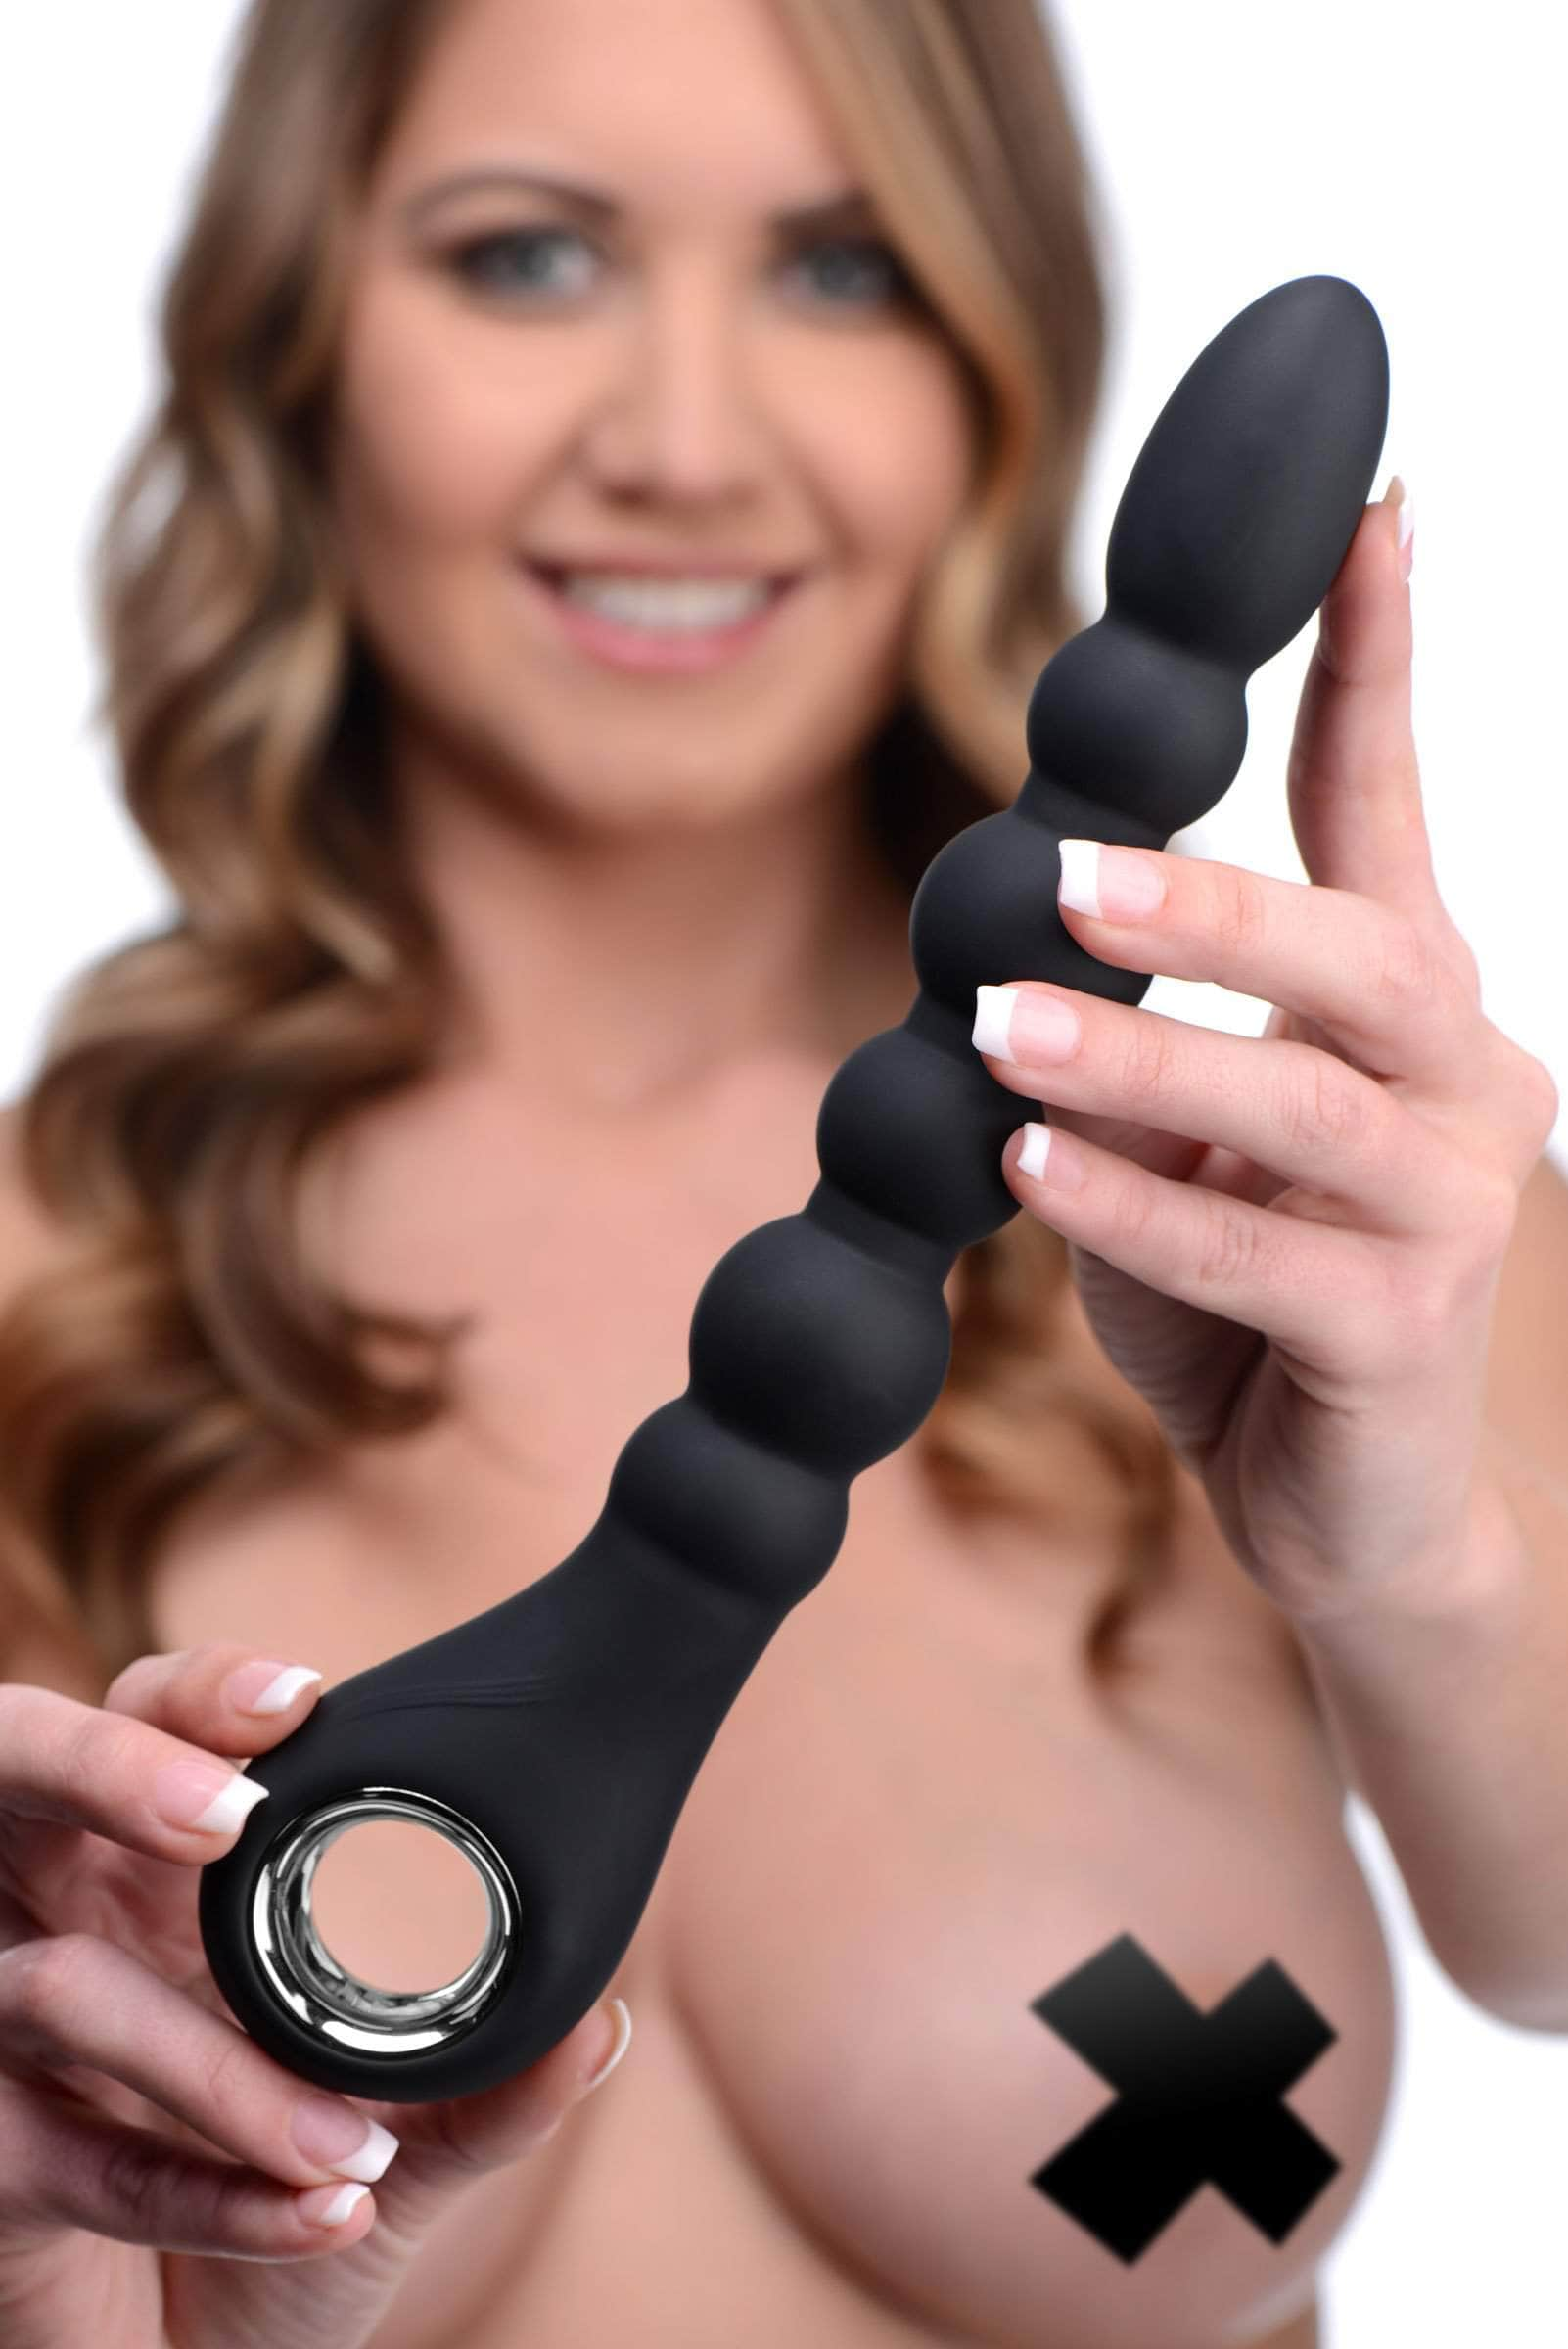 Dark Scepter 10x Vibrating Silicone Anal Beads